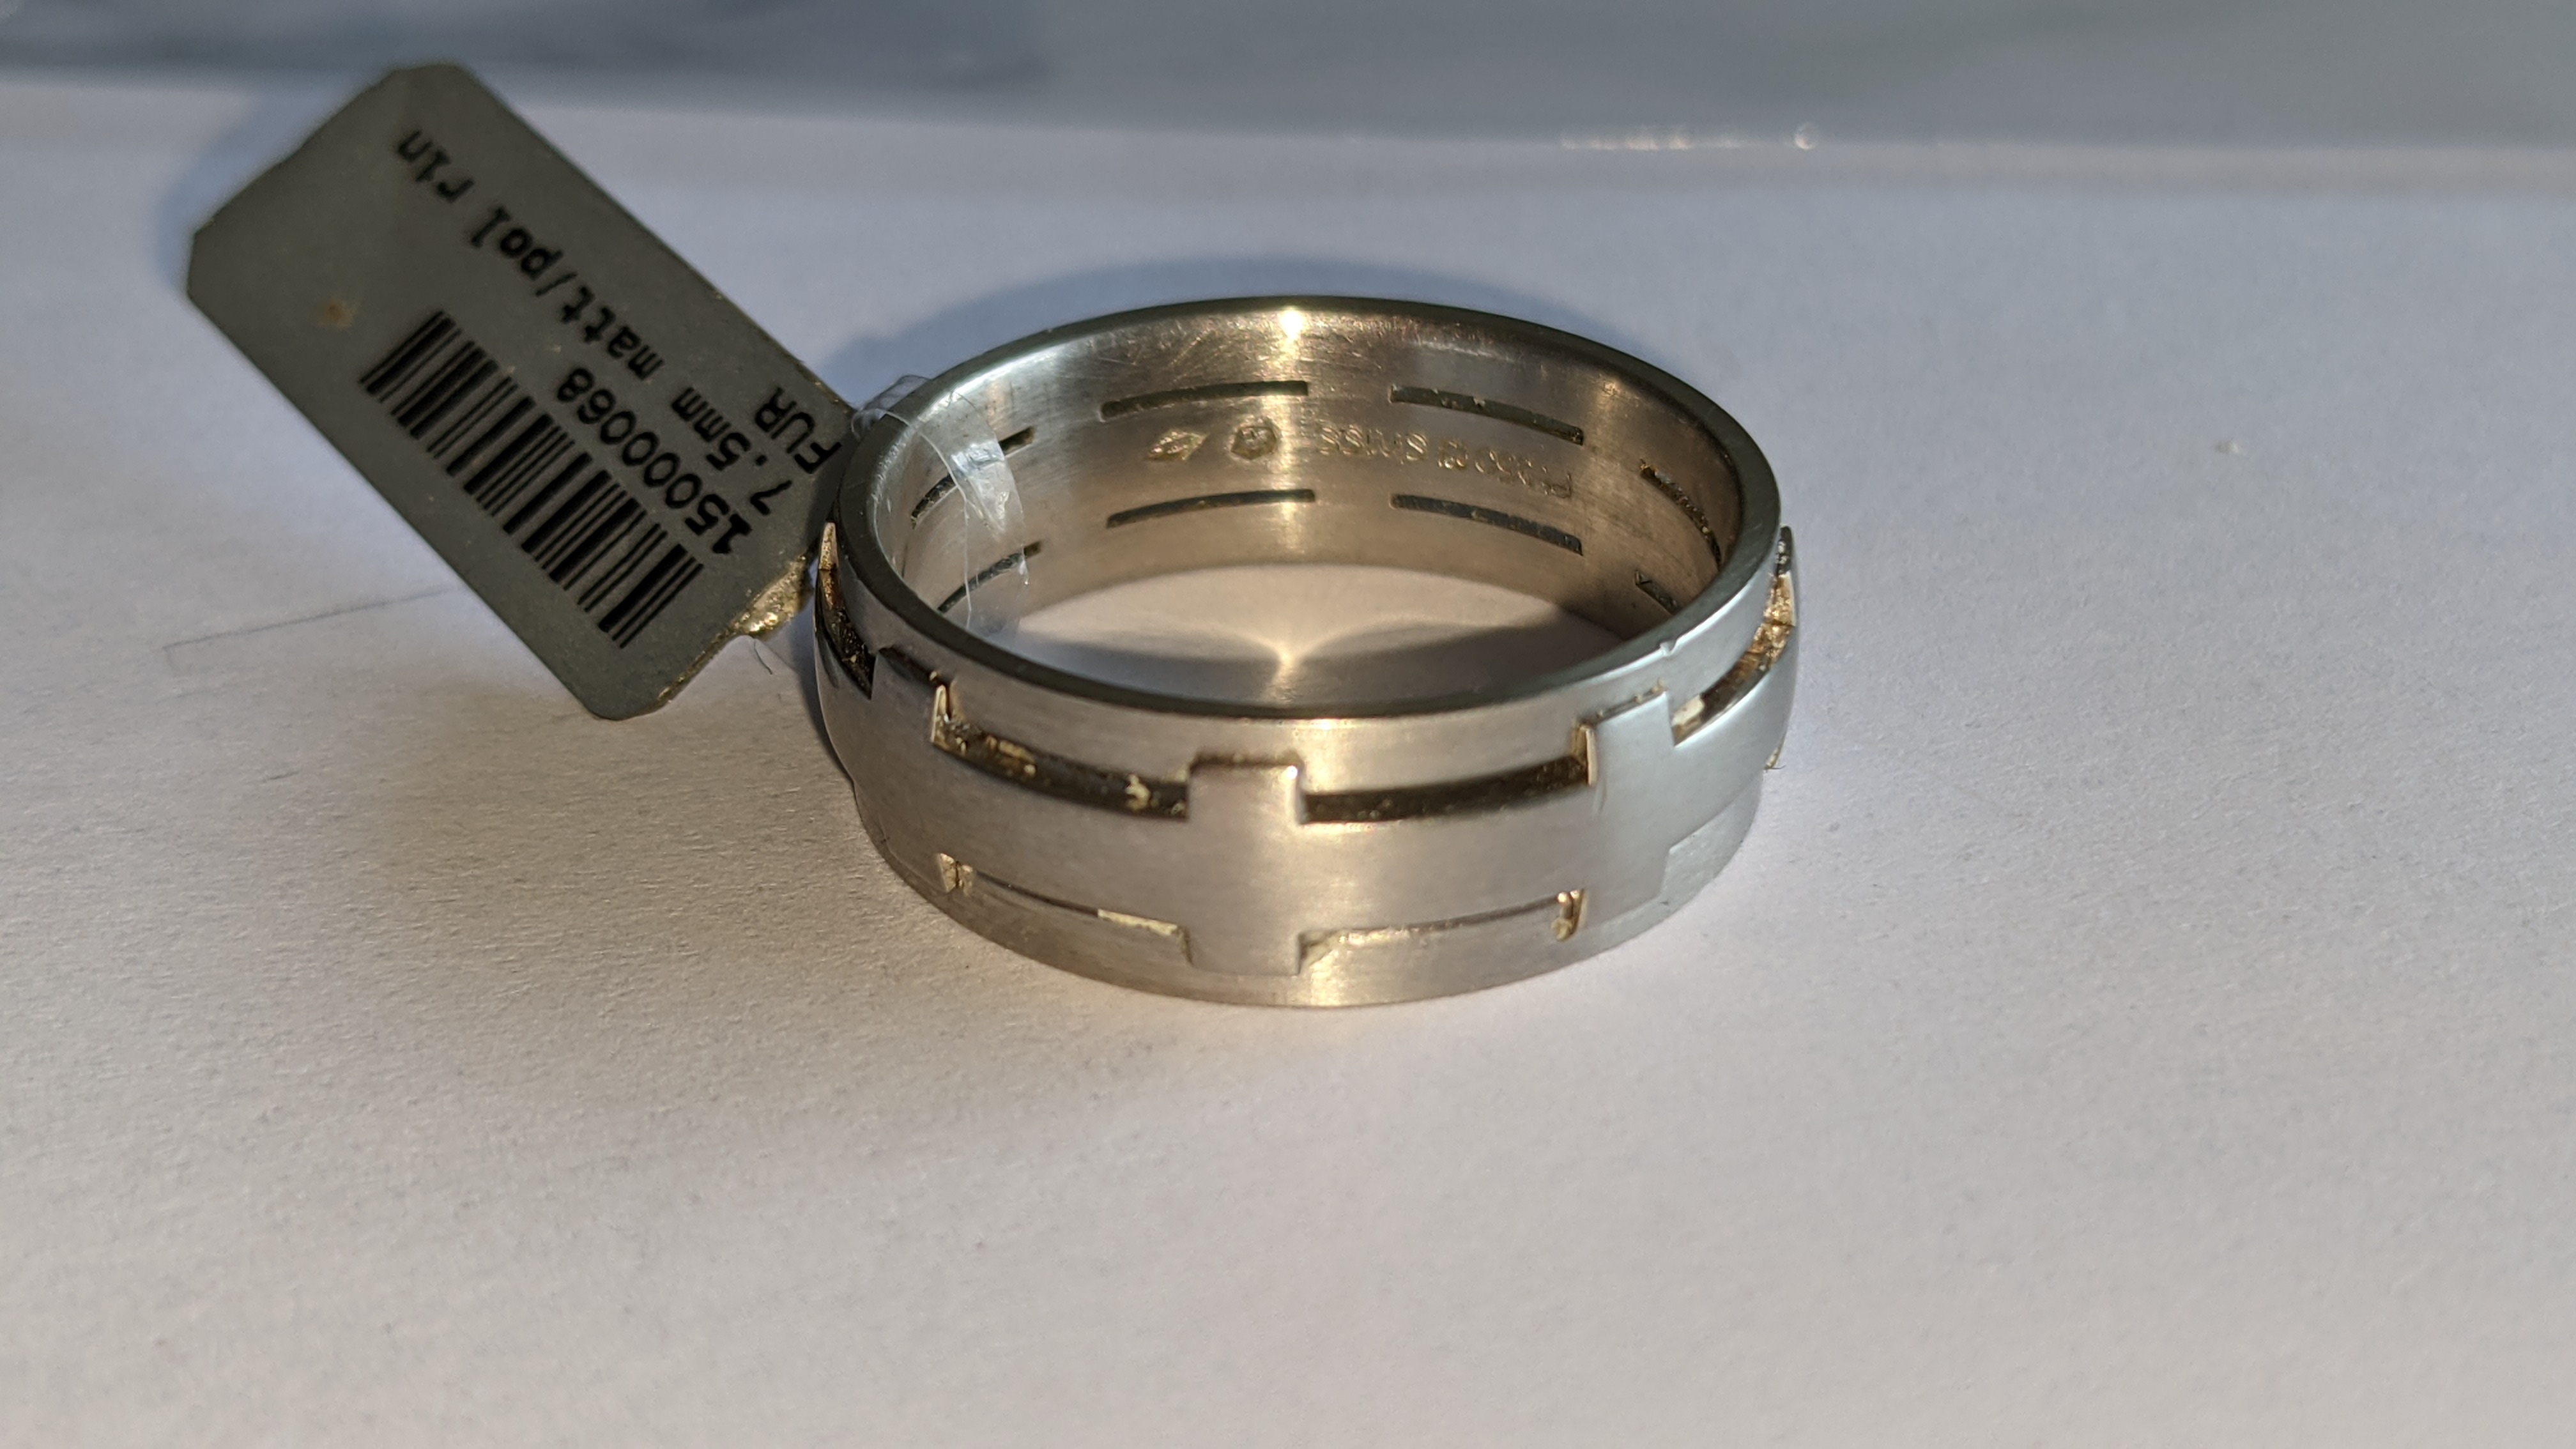 Platinum 950 ring in matt & polished finish, 7.5mm wide. RRP £2,960 - Image 8 of 15